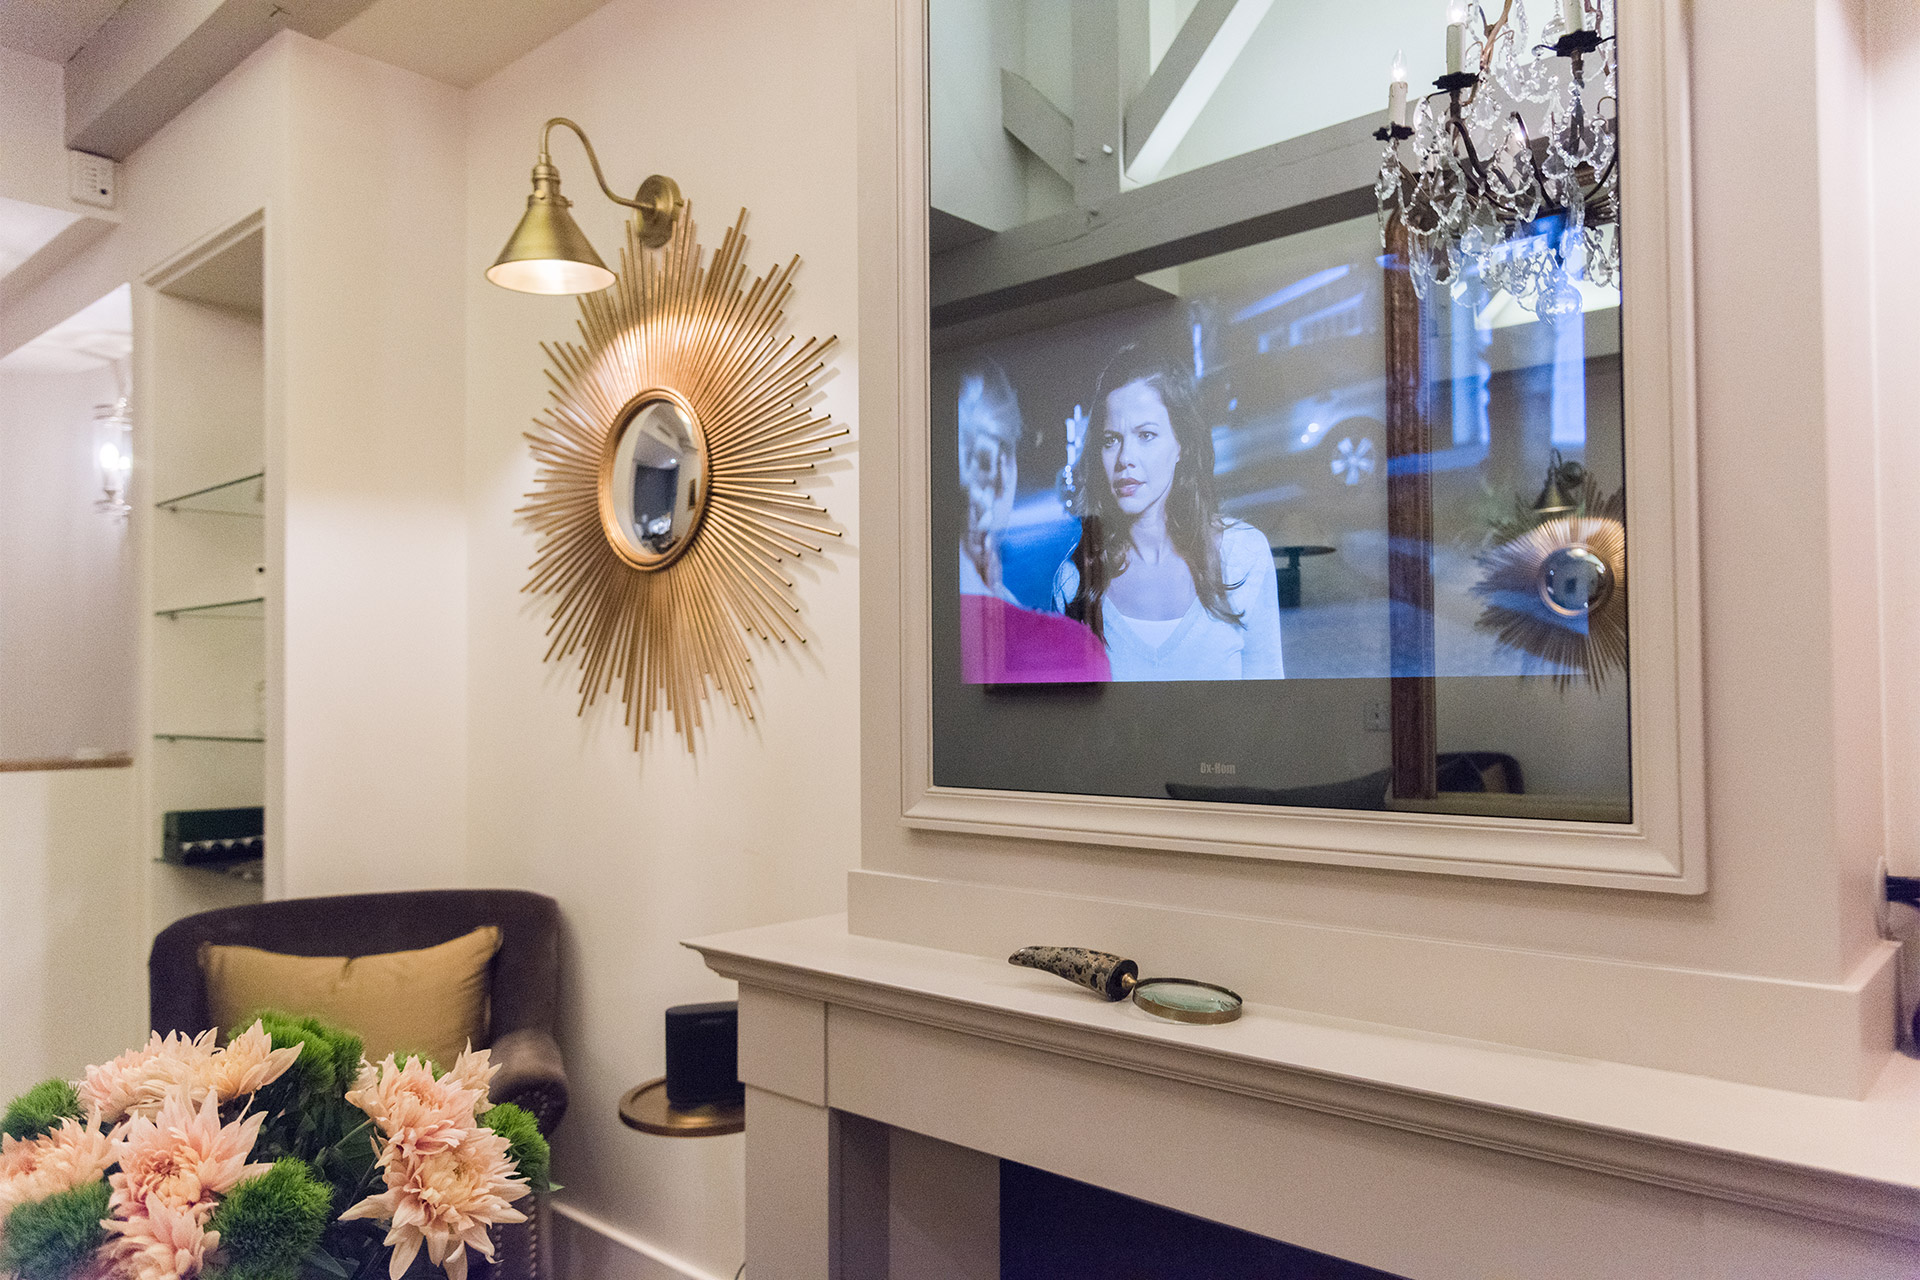 Intelligent design reveals the TV behind the mirror in the Monbazillac vacation rental offered by Paris Perfect